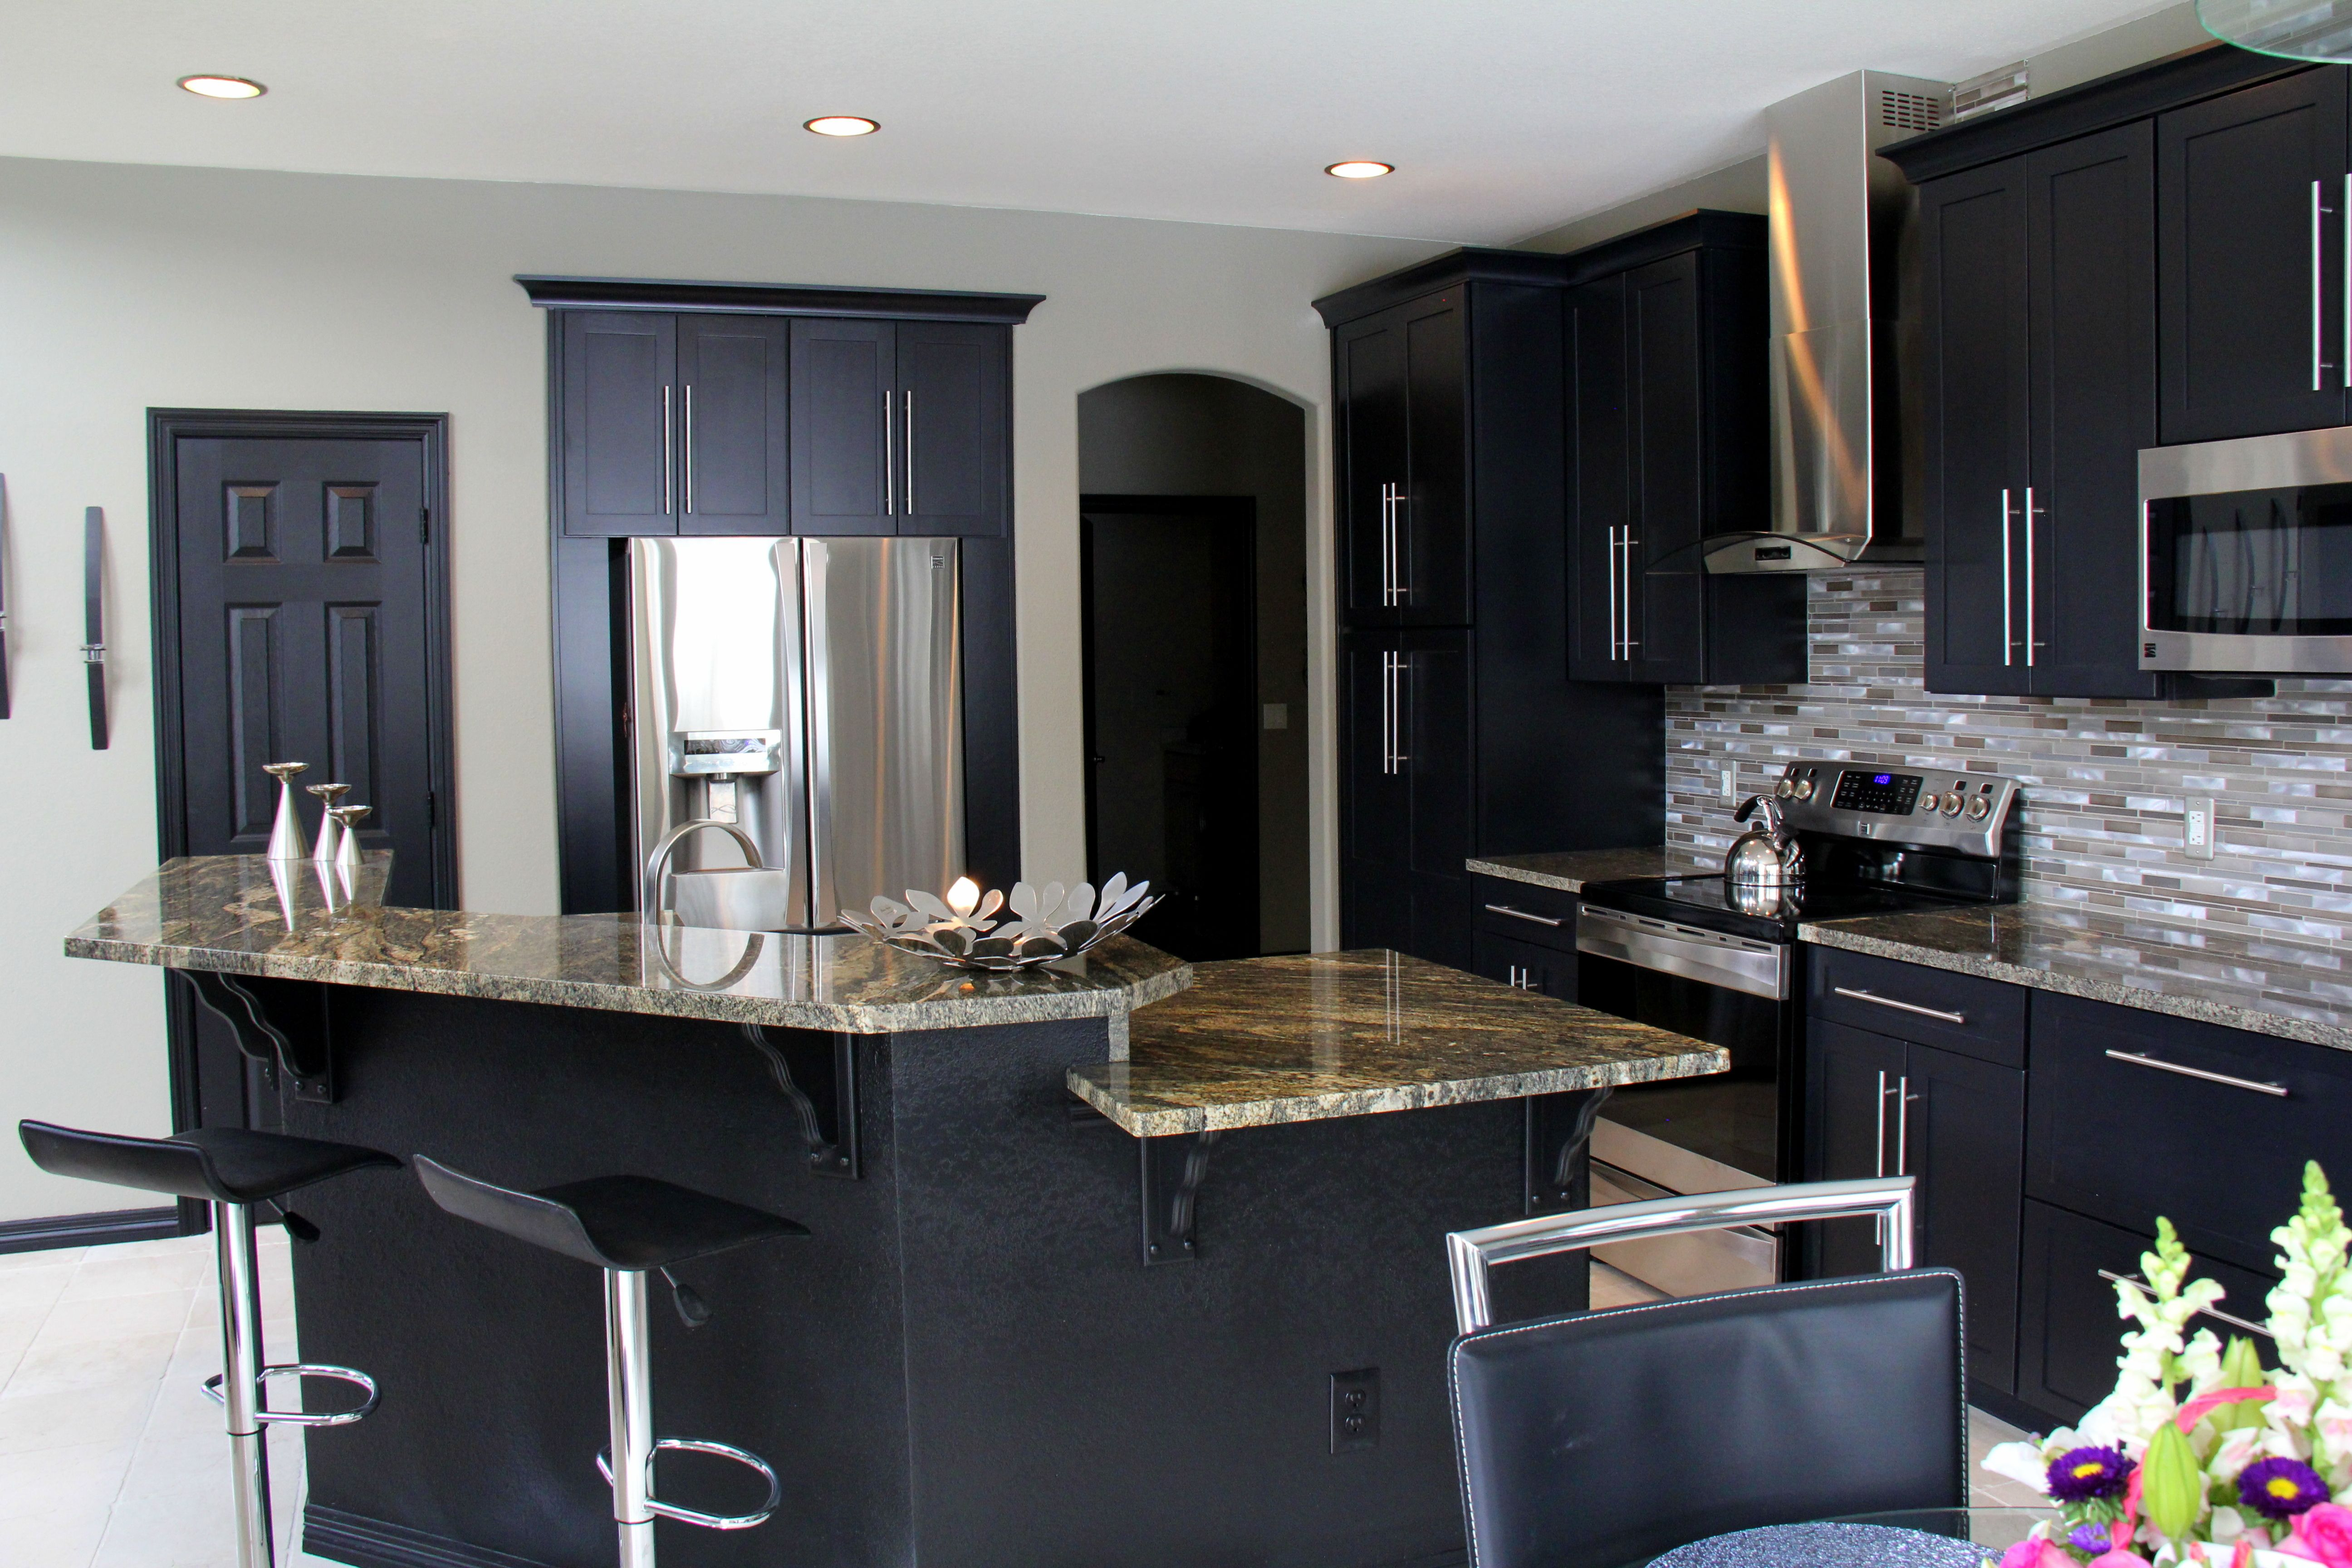 This dual-level kitchen island allows for ample counter space for ...